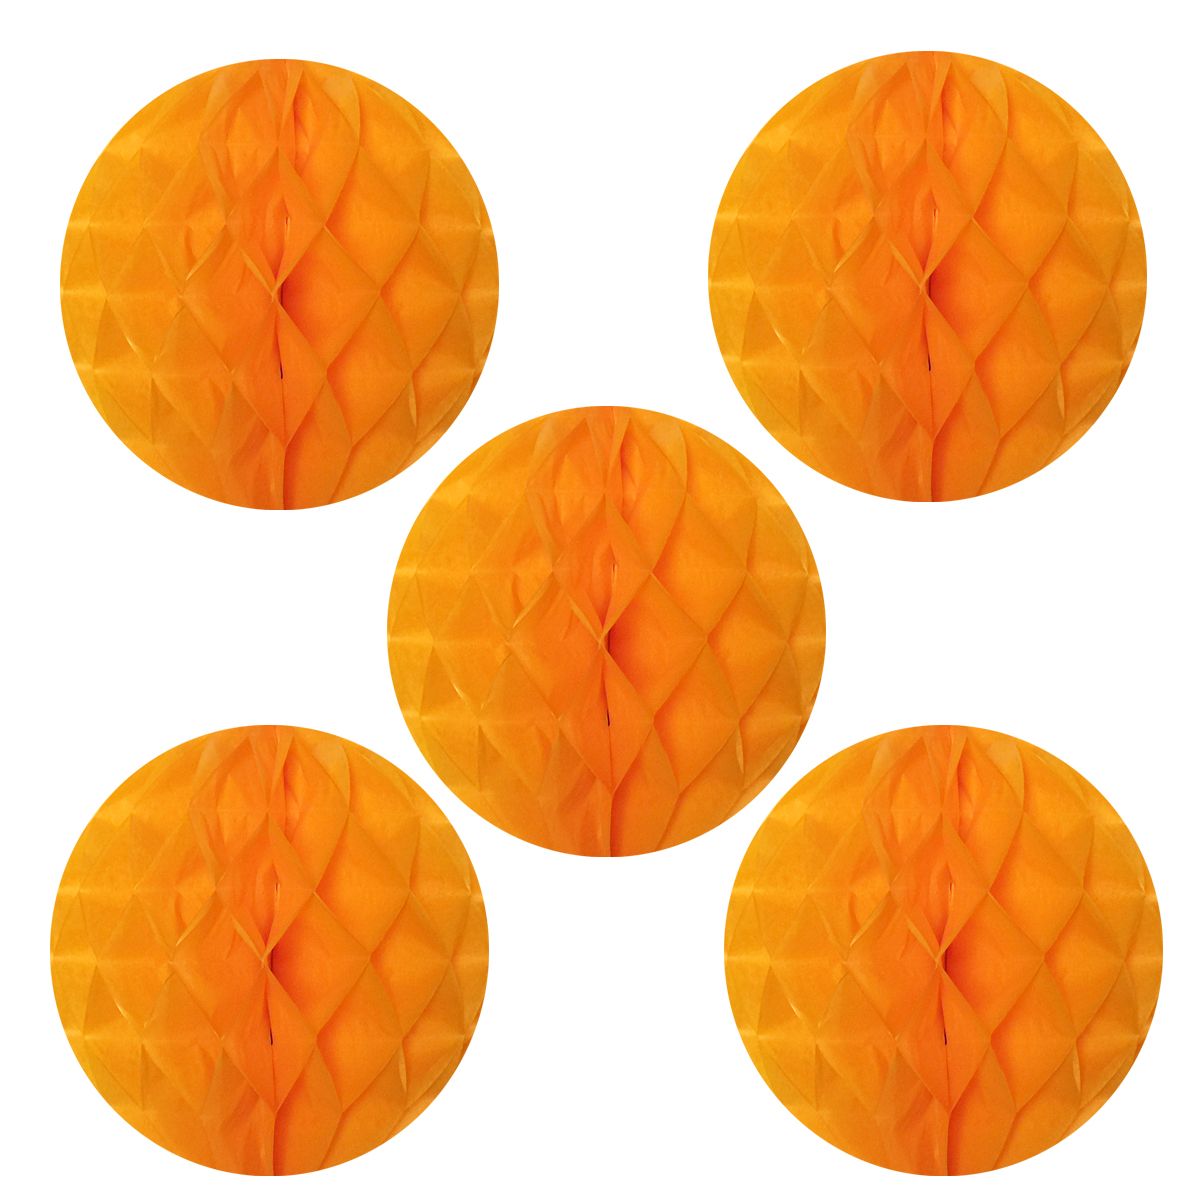 12 Baby Showers and Nursery Decor Yellow Wrapables Tissue Honeycomb Ball Party Decorations for Weddings Set of 3 Birthday Parties